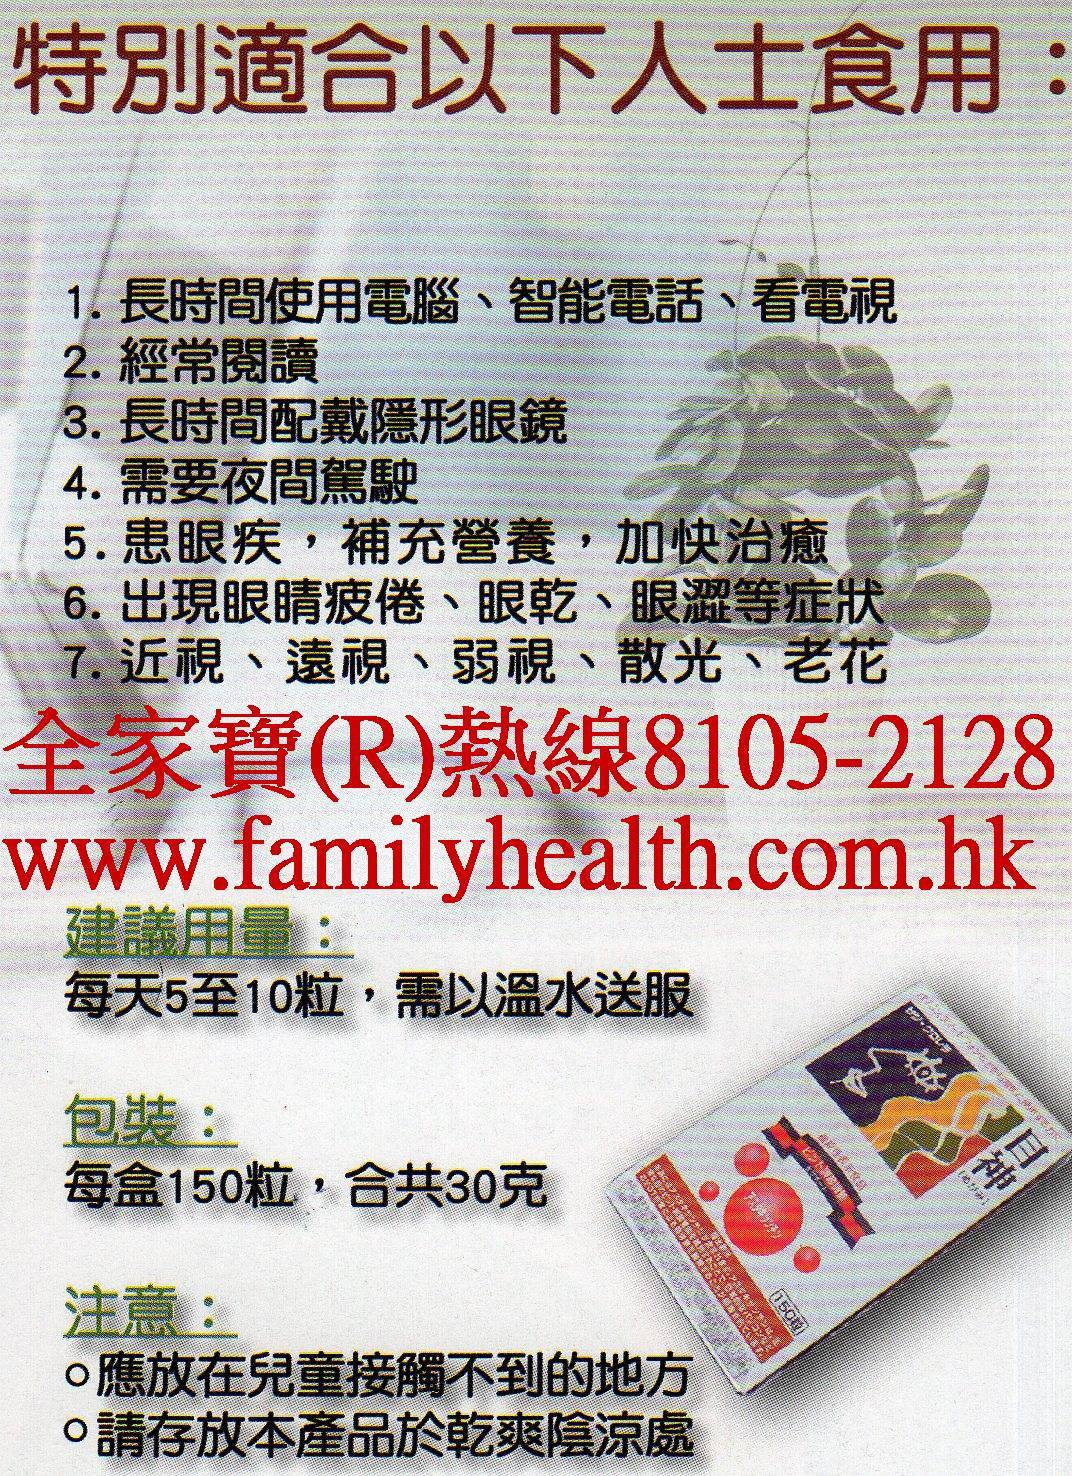 http://www.familyhealth.com.hk/files/full/1031_3.jpg